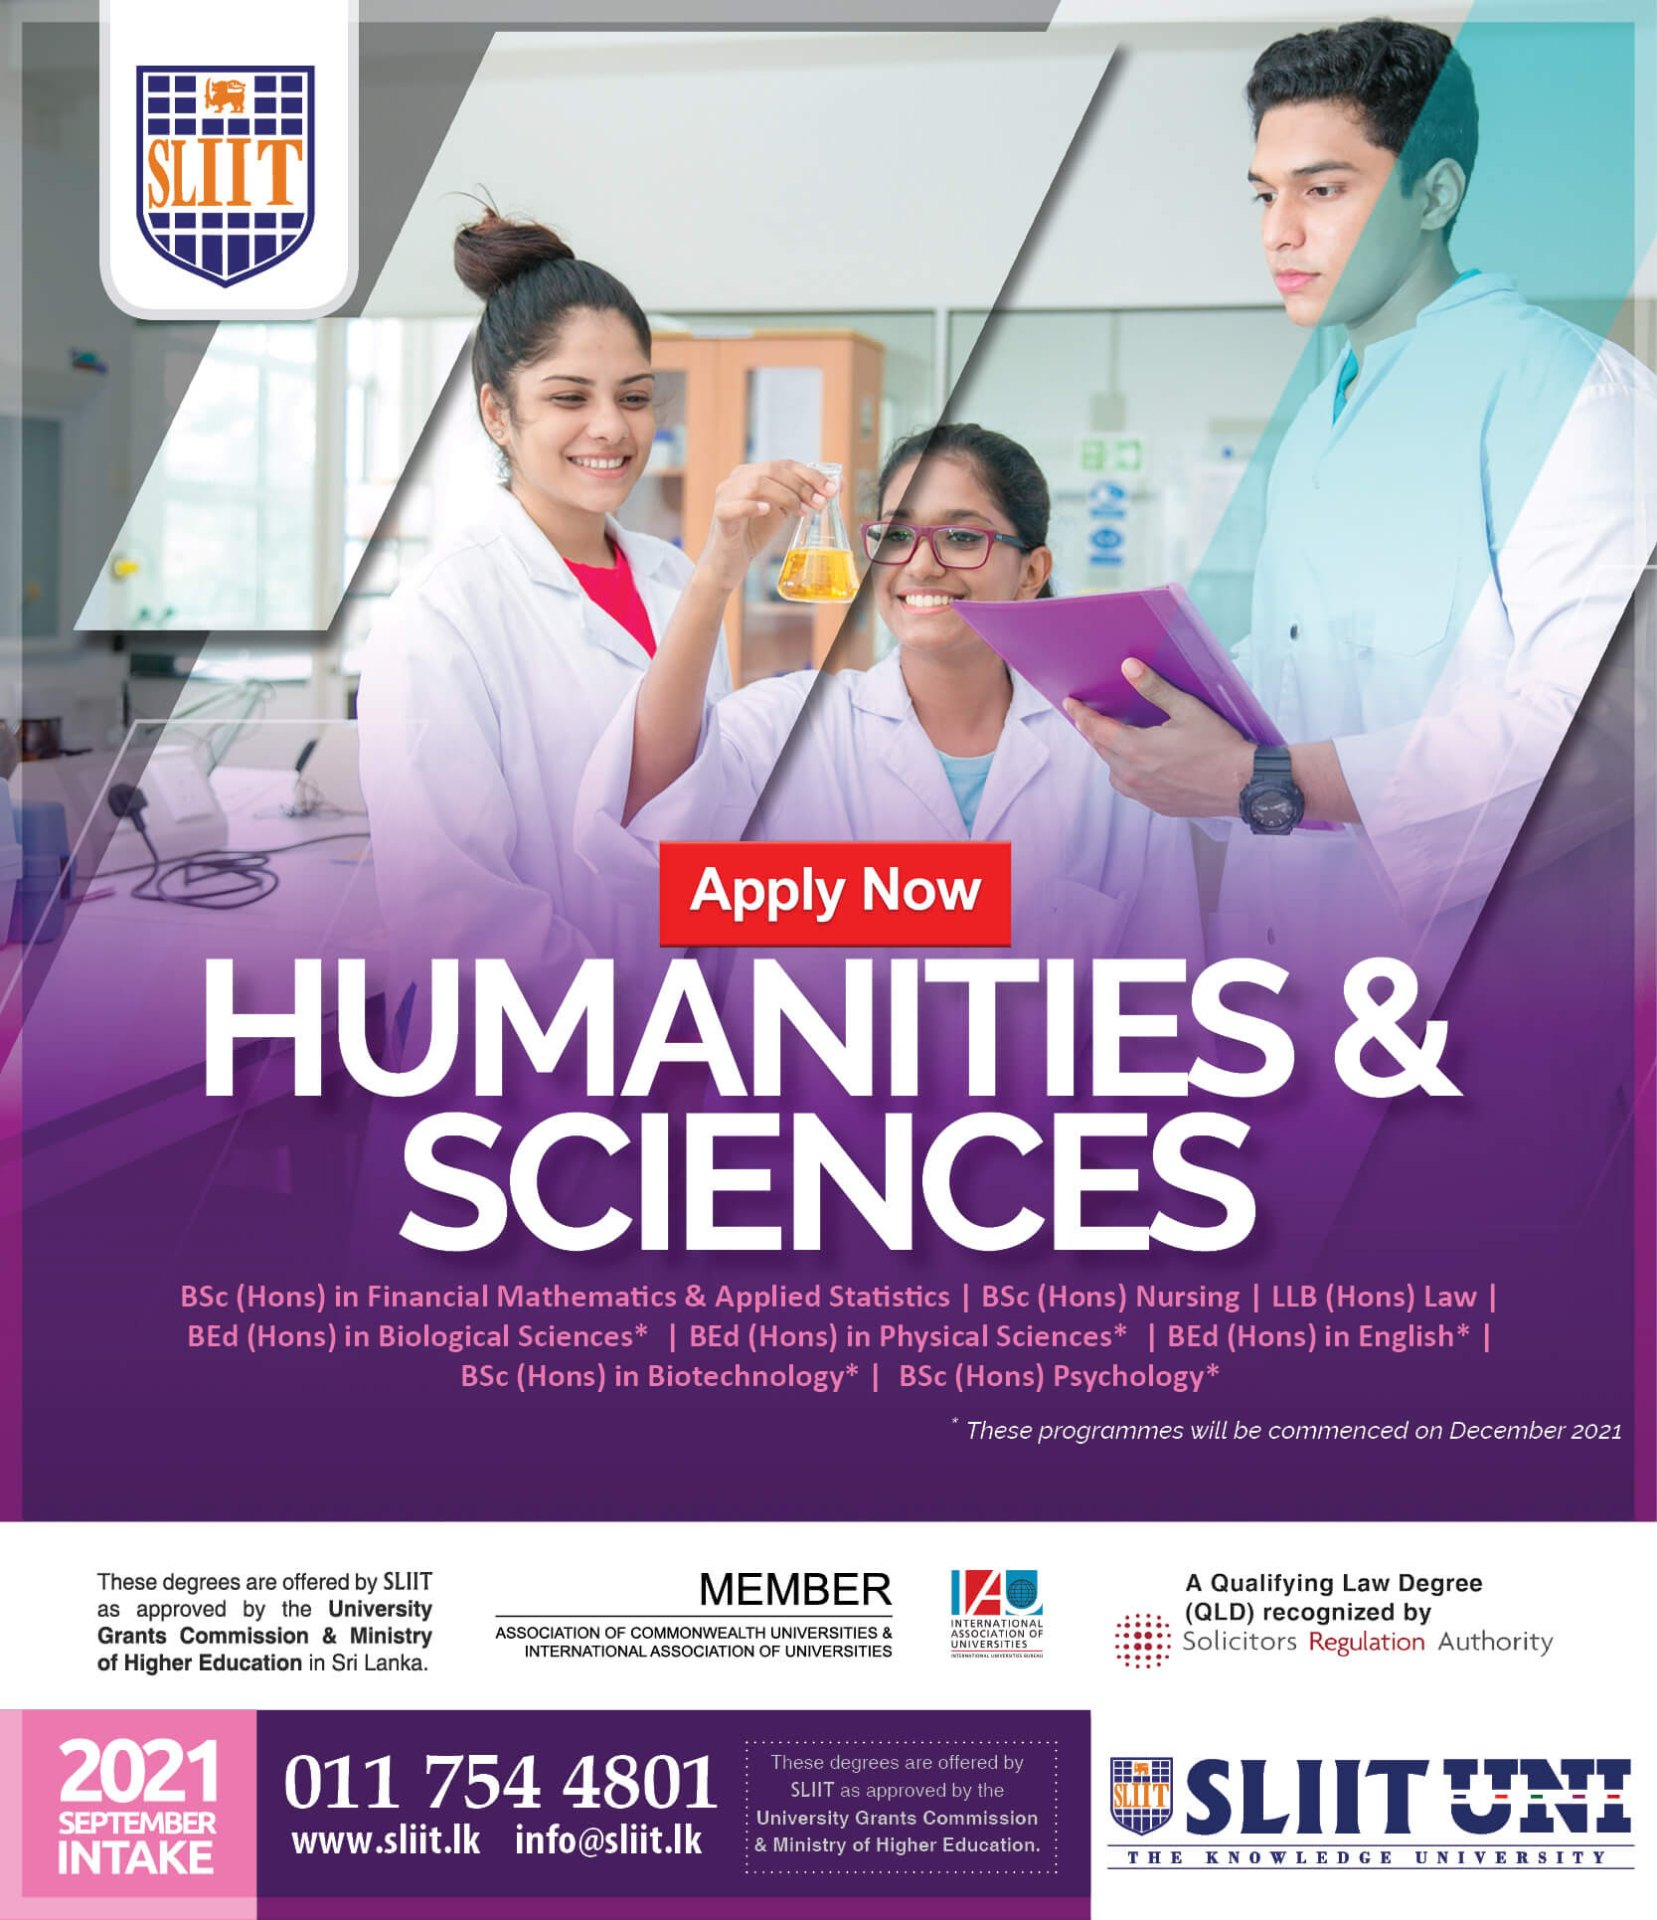 Apply Now for Humanities & Sciences Degrees at SLIIT